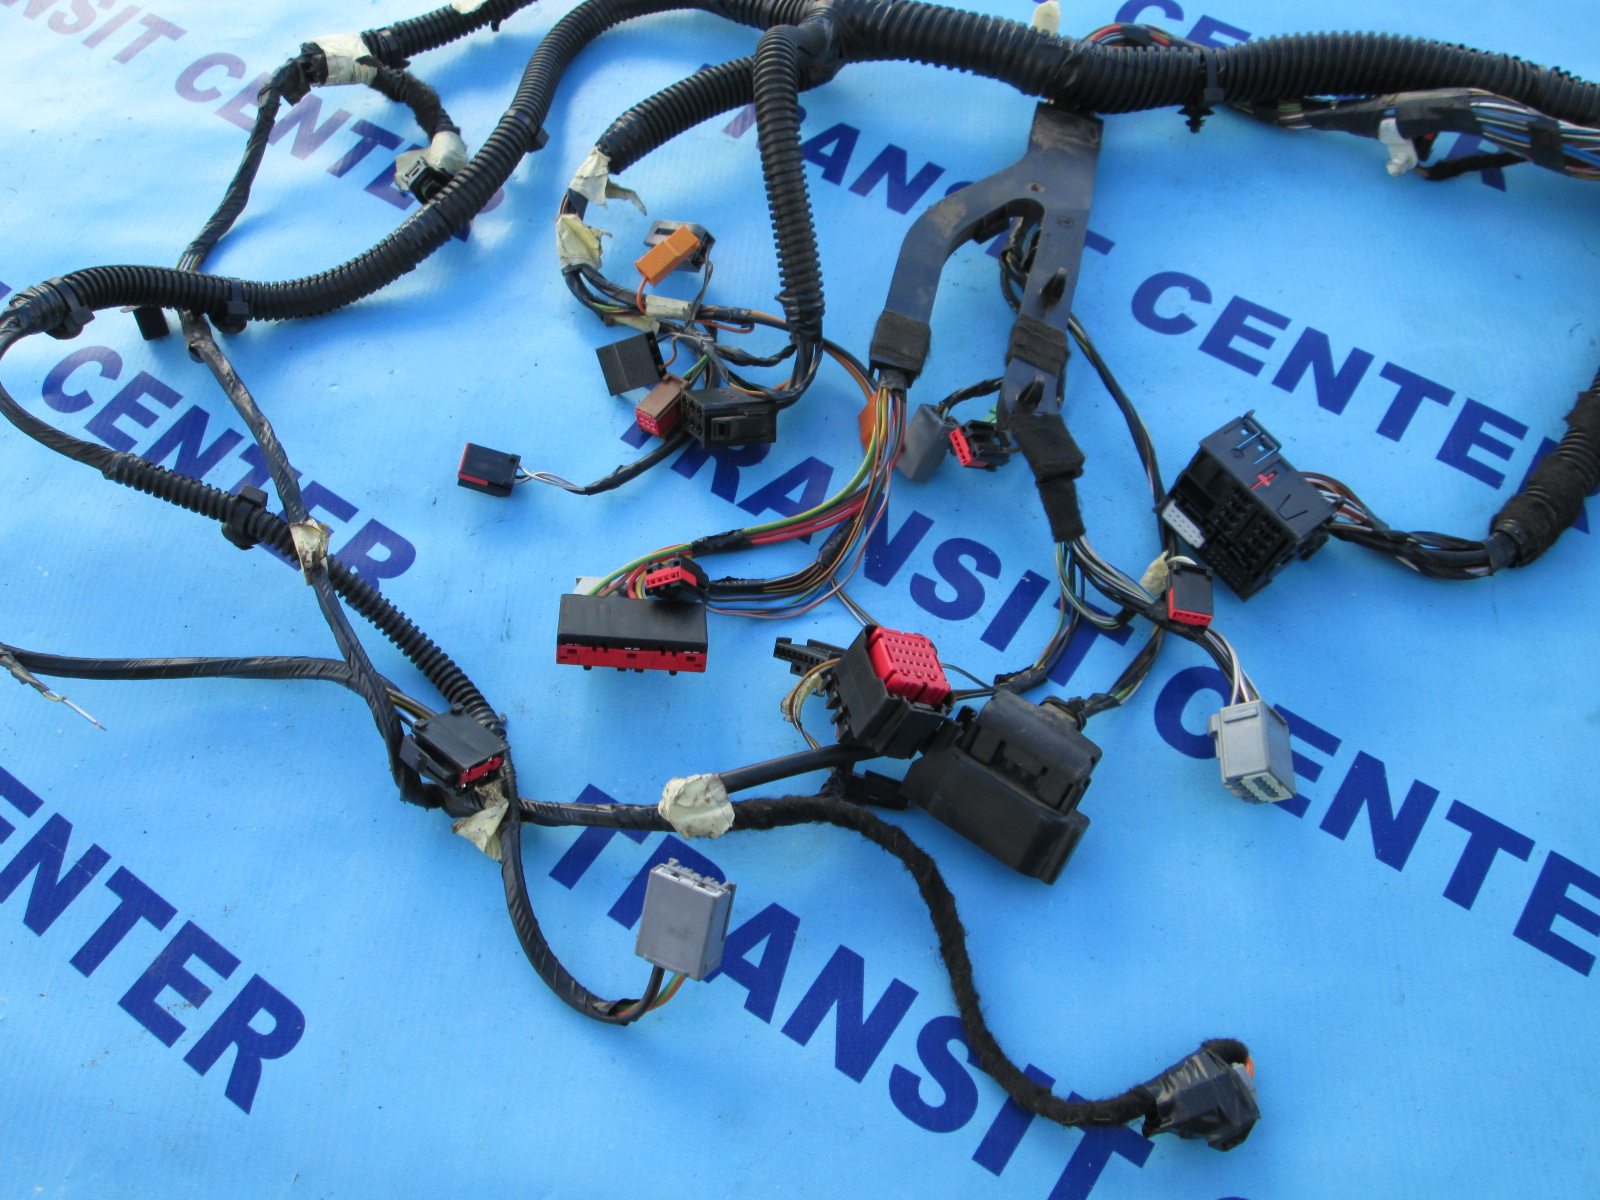 ford transit dashboard wiring loom 4472 2 dashboard wiring loom harness ford transit connect 2009, rhd 2013 Ford Transit Connect Interior at mifinder.co